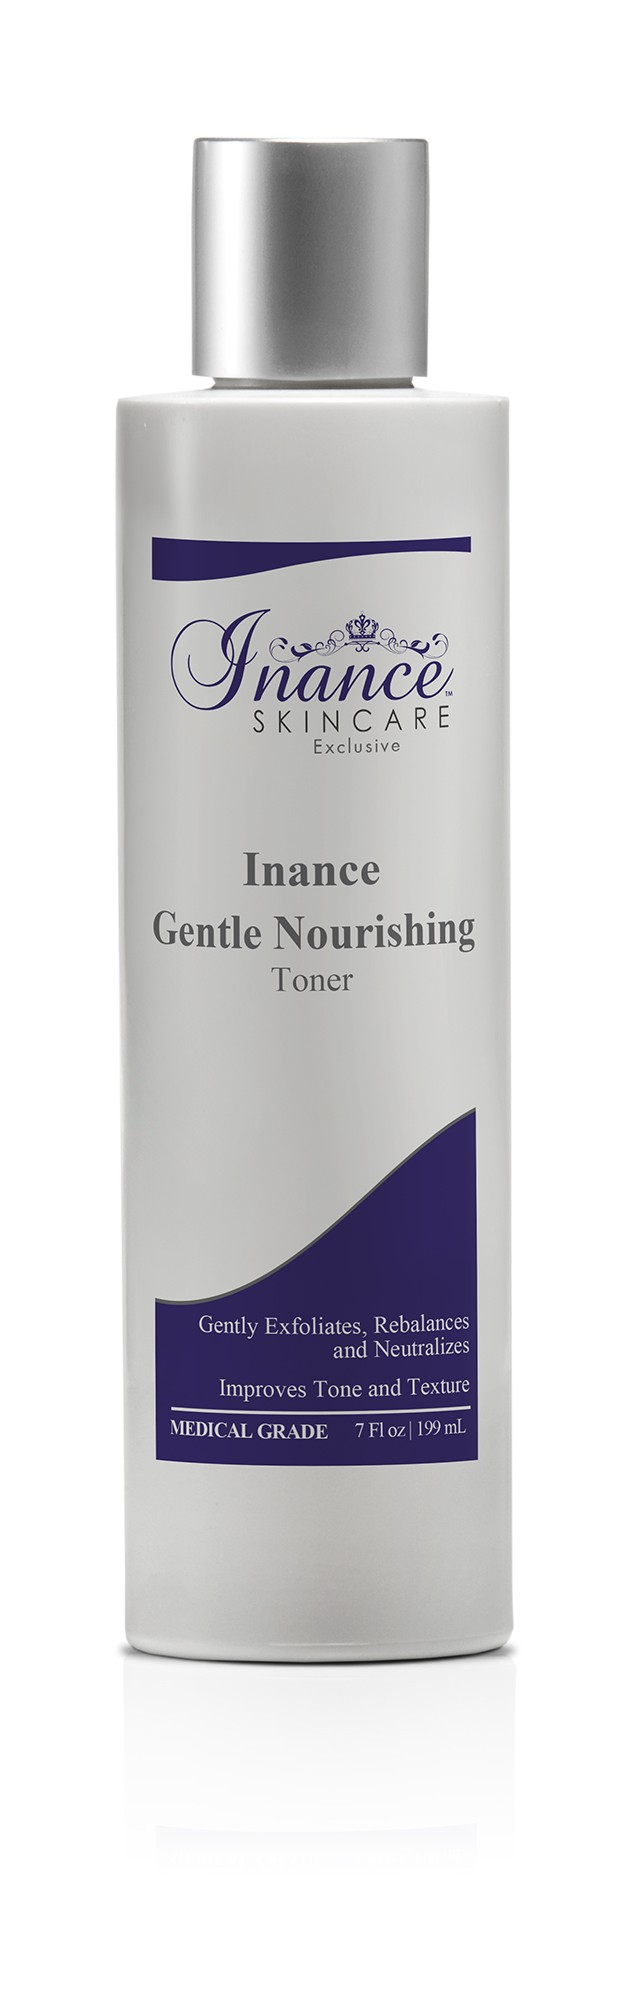 Inance Exclusive Gentle Nourishing Toner 7 oz